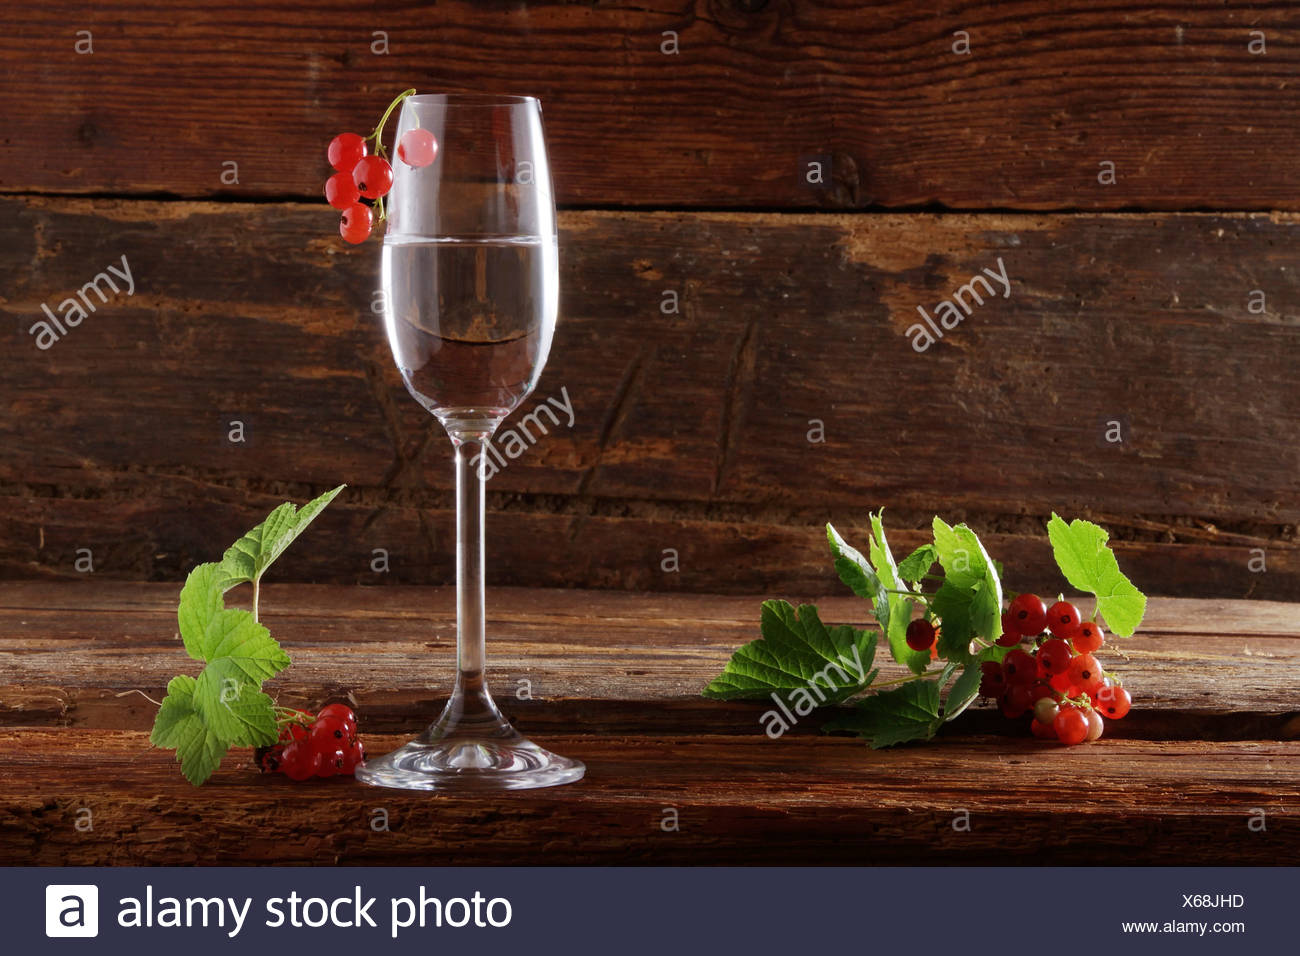 A glass of red currant schnapps with red currants (Ribes rubrum) on wooden background Stock Photo